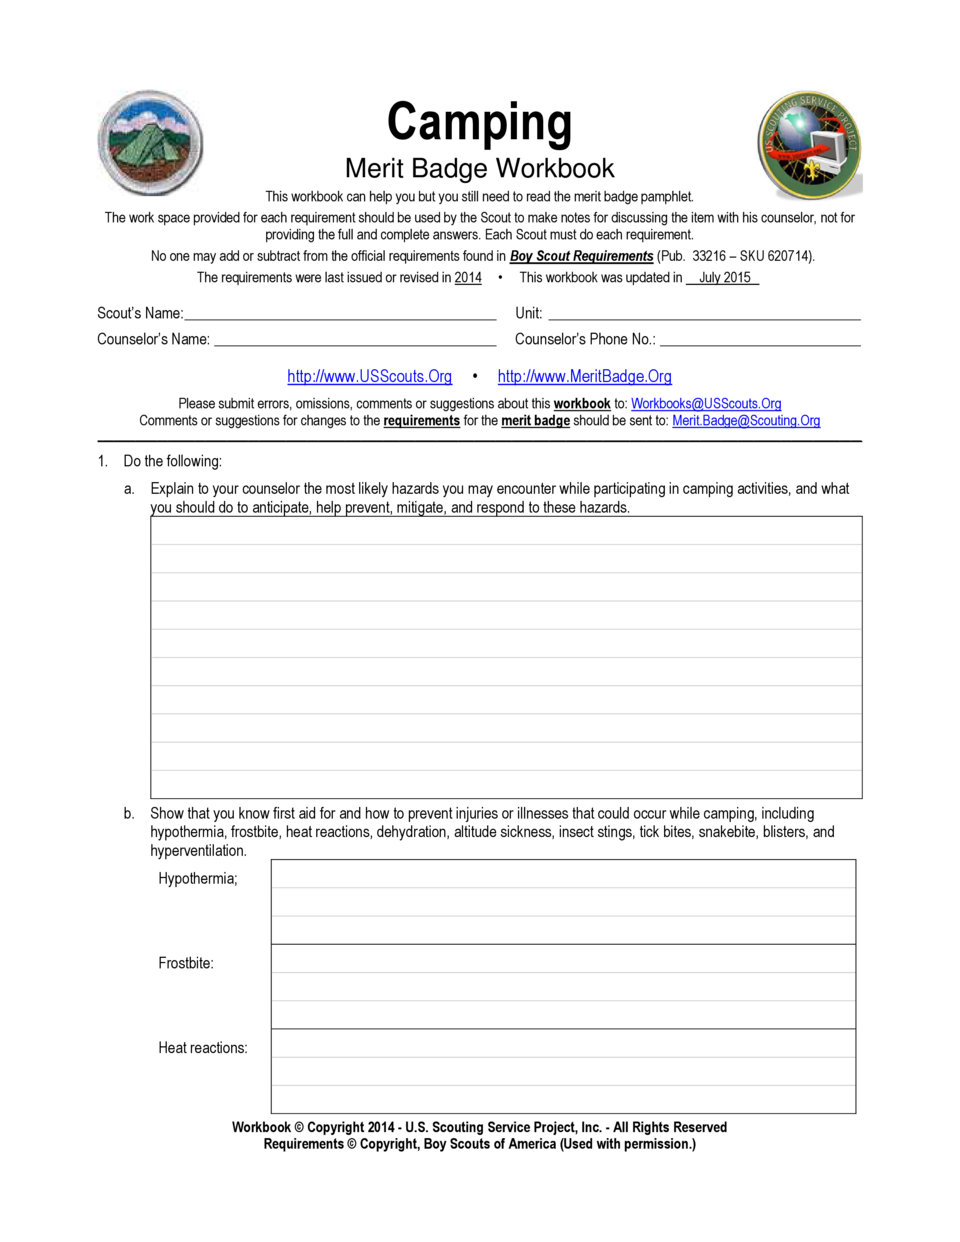 Worksheets Boy Scout Merit Badge Worksheet camping merit badge simplebooklet com workbook this can help you but still need to read the